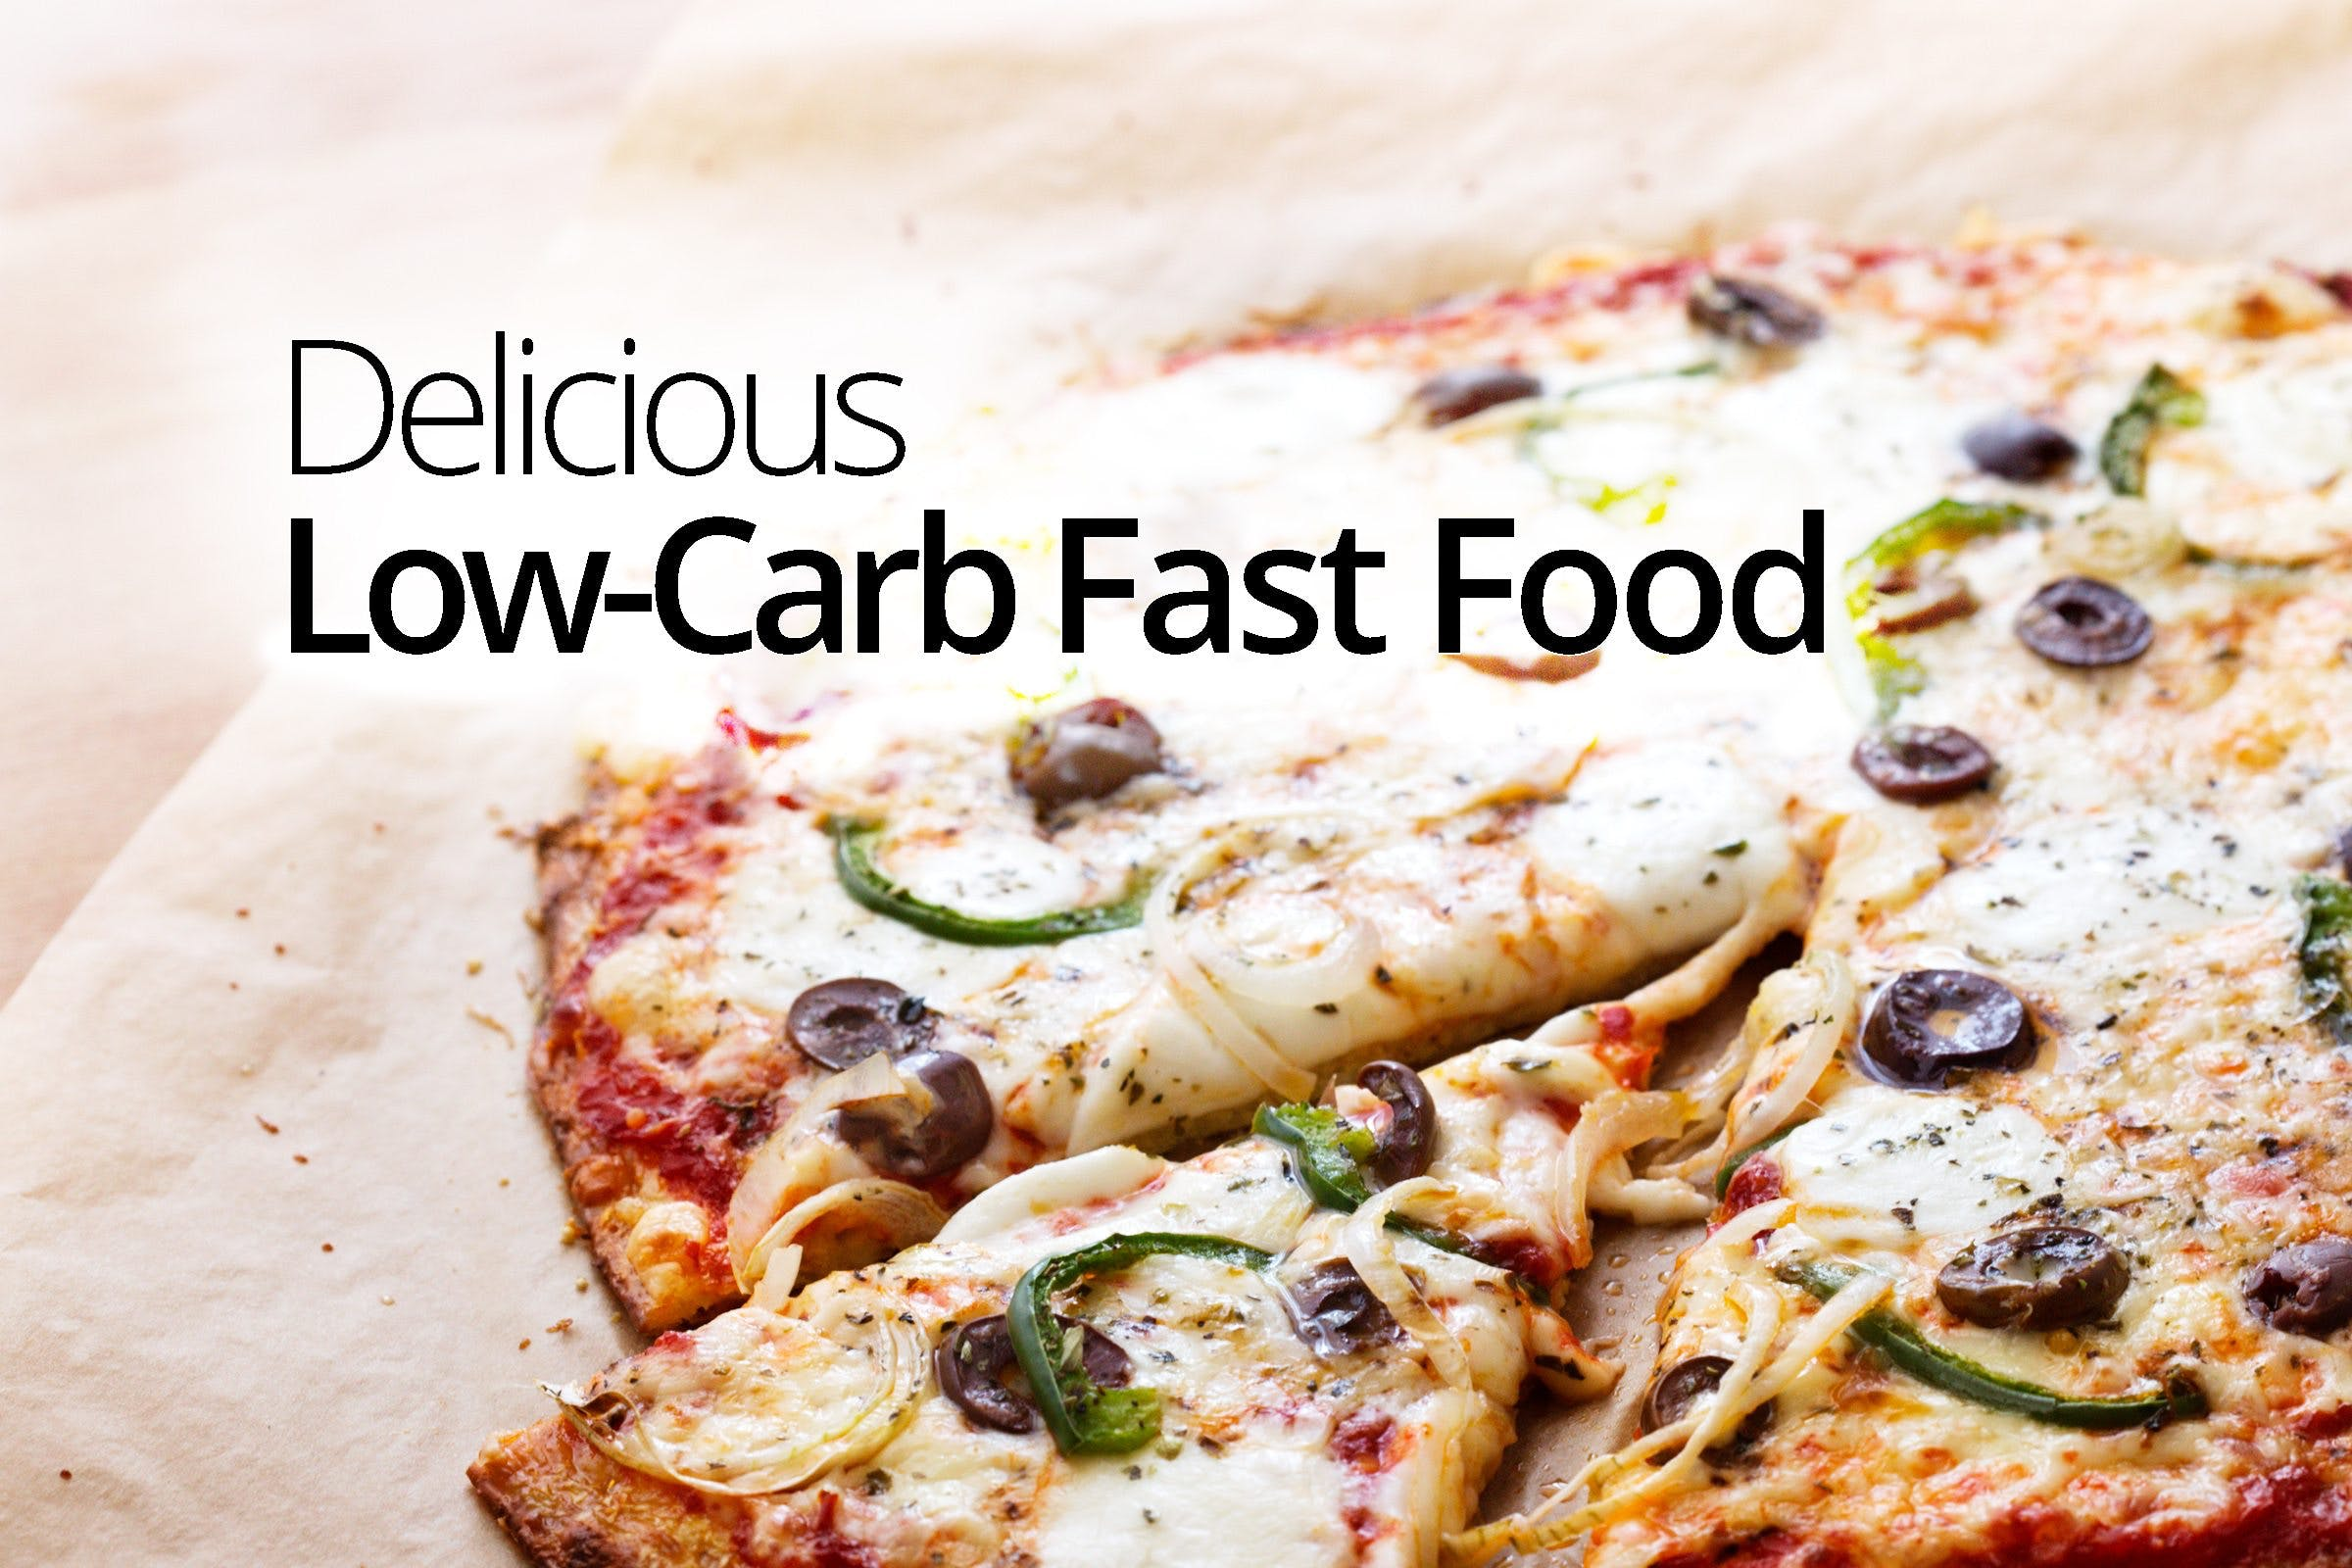 Low-Carb Fast Food